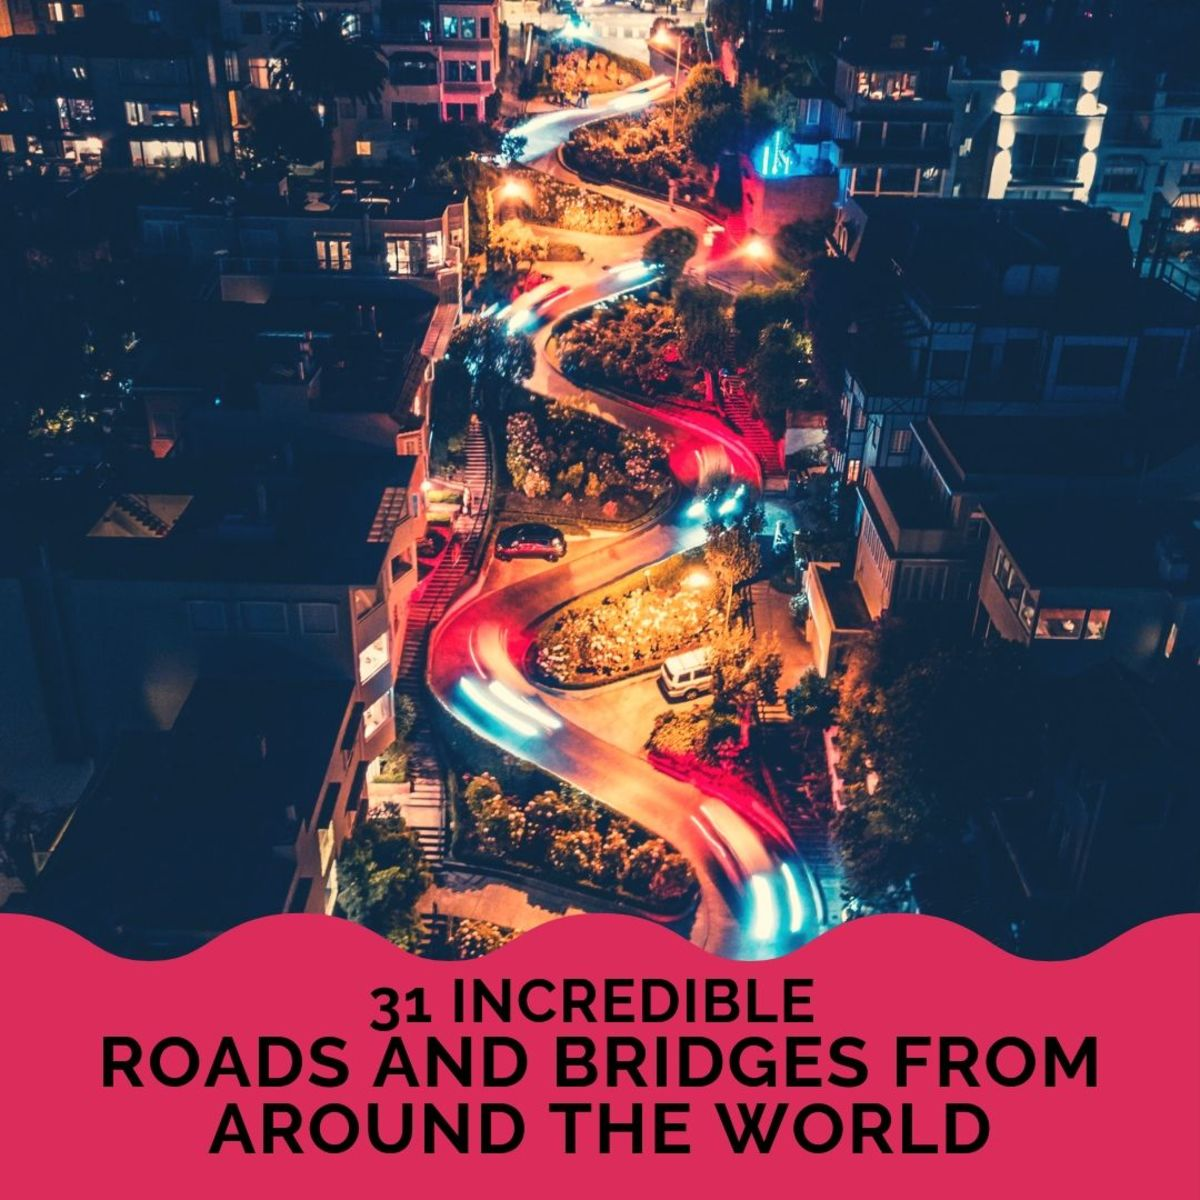 31 of the World's Most Amazing Roads